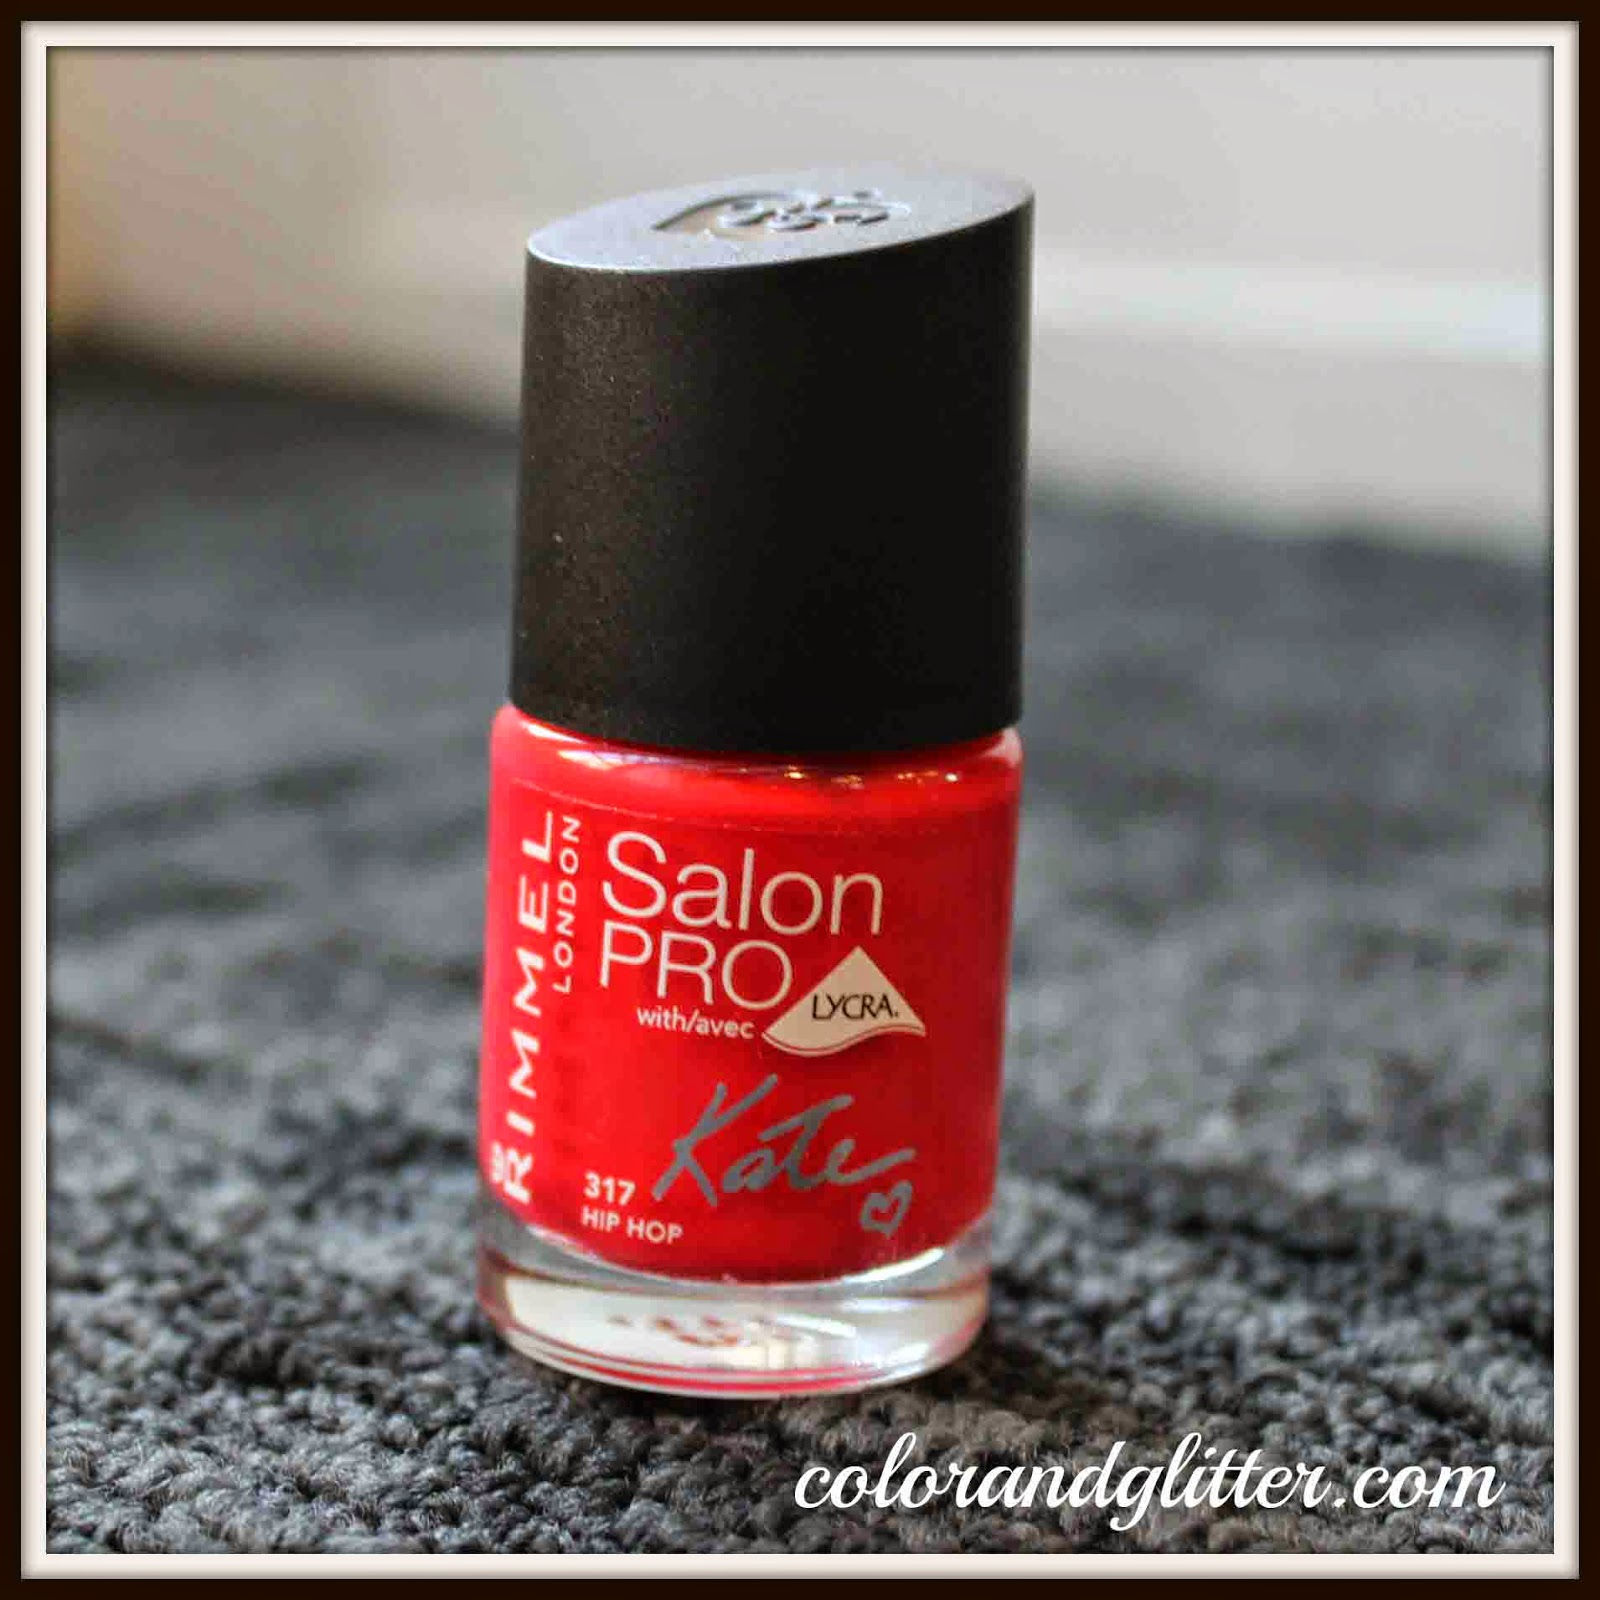 Rimmel Salon Pro Nail Color with Lycra by Kate in Hip Hop || Review and Swatches